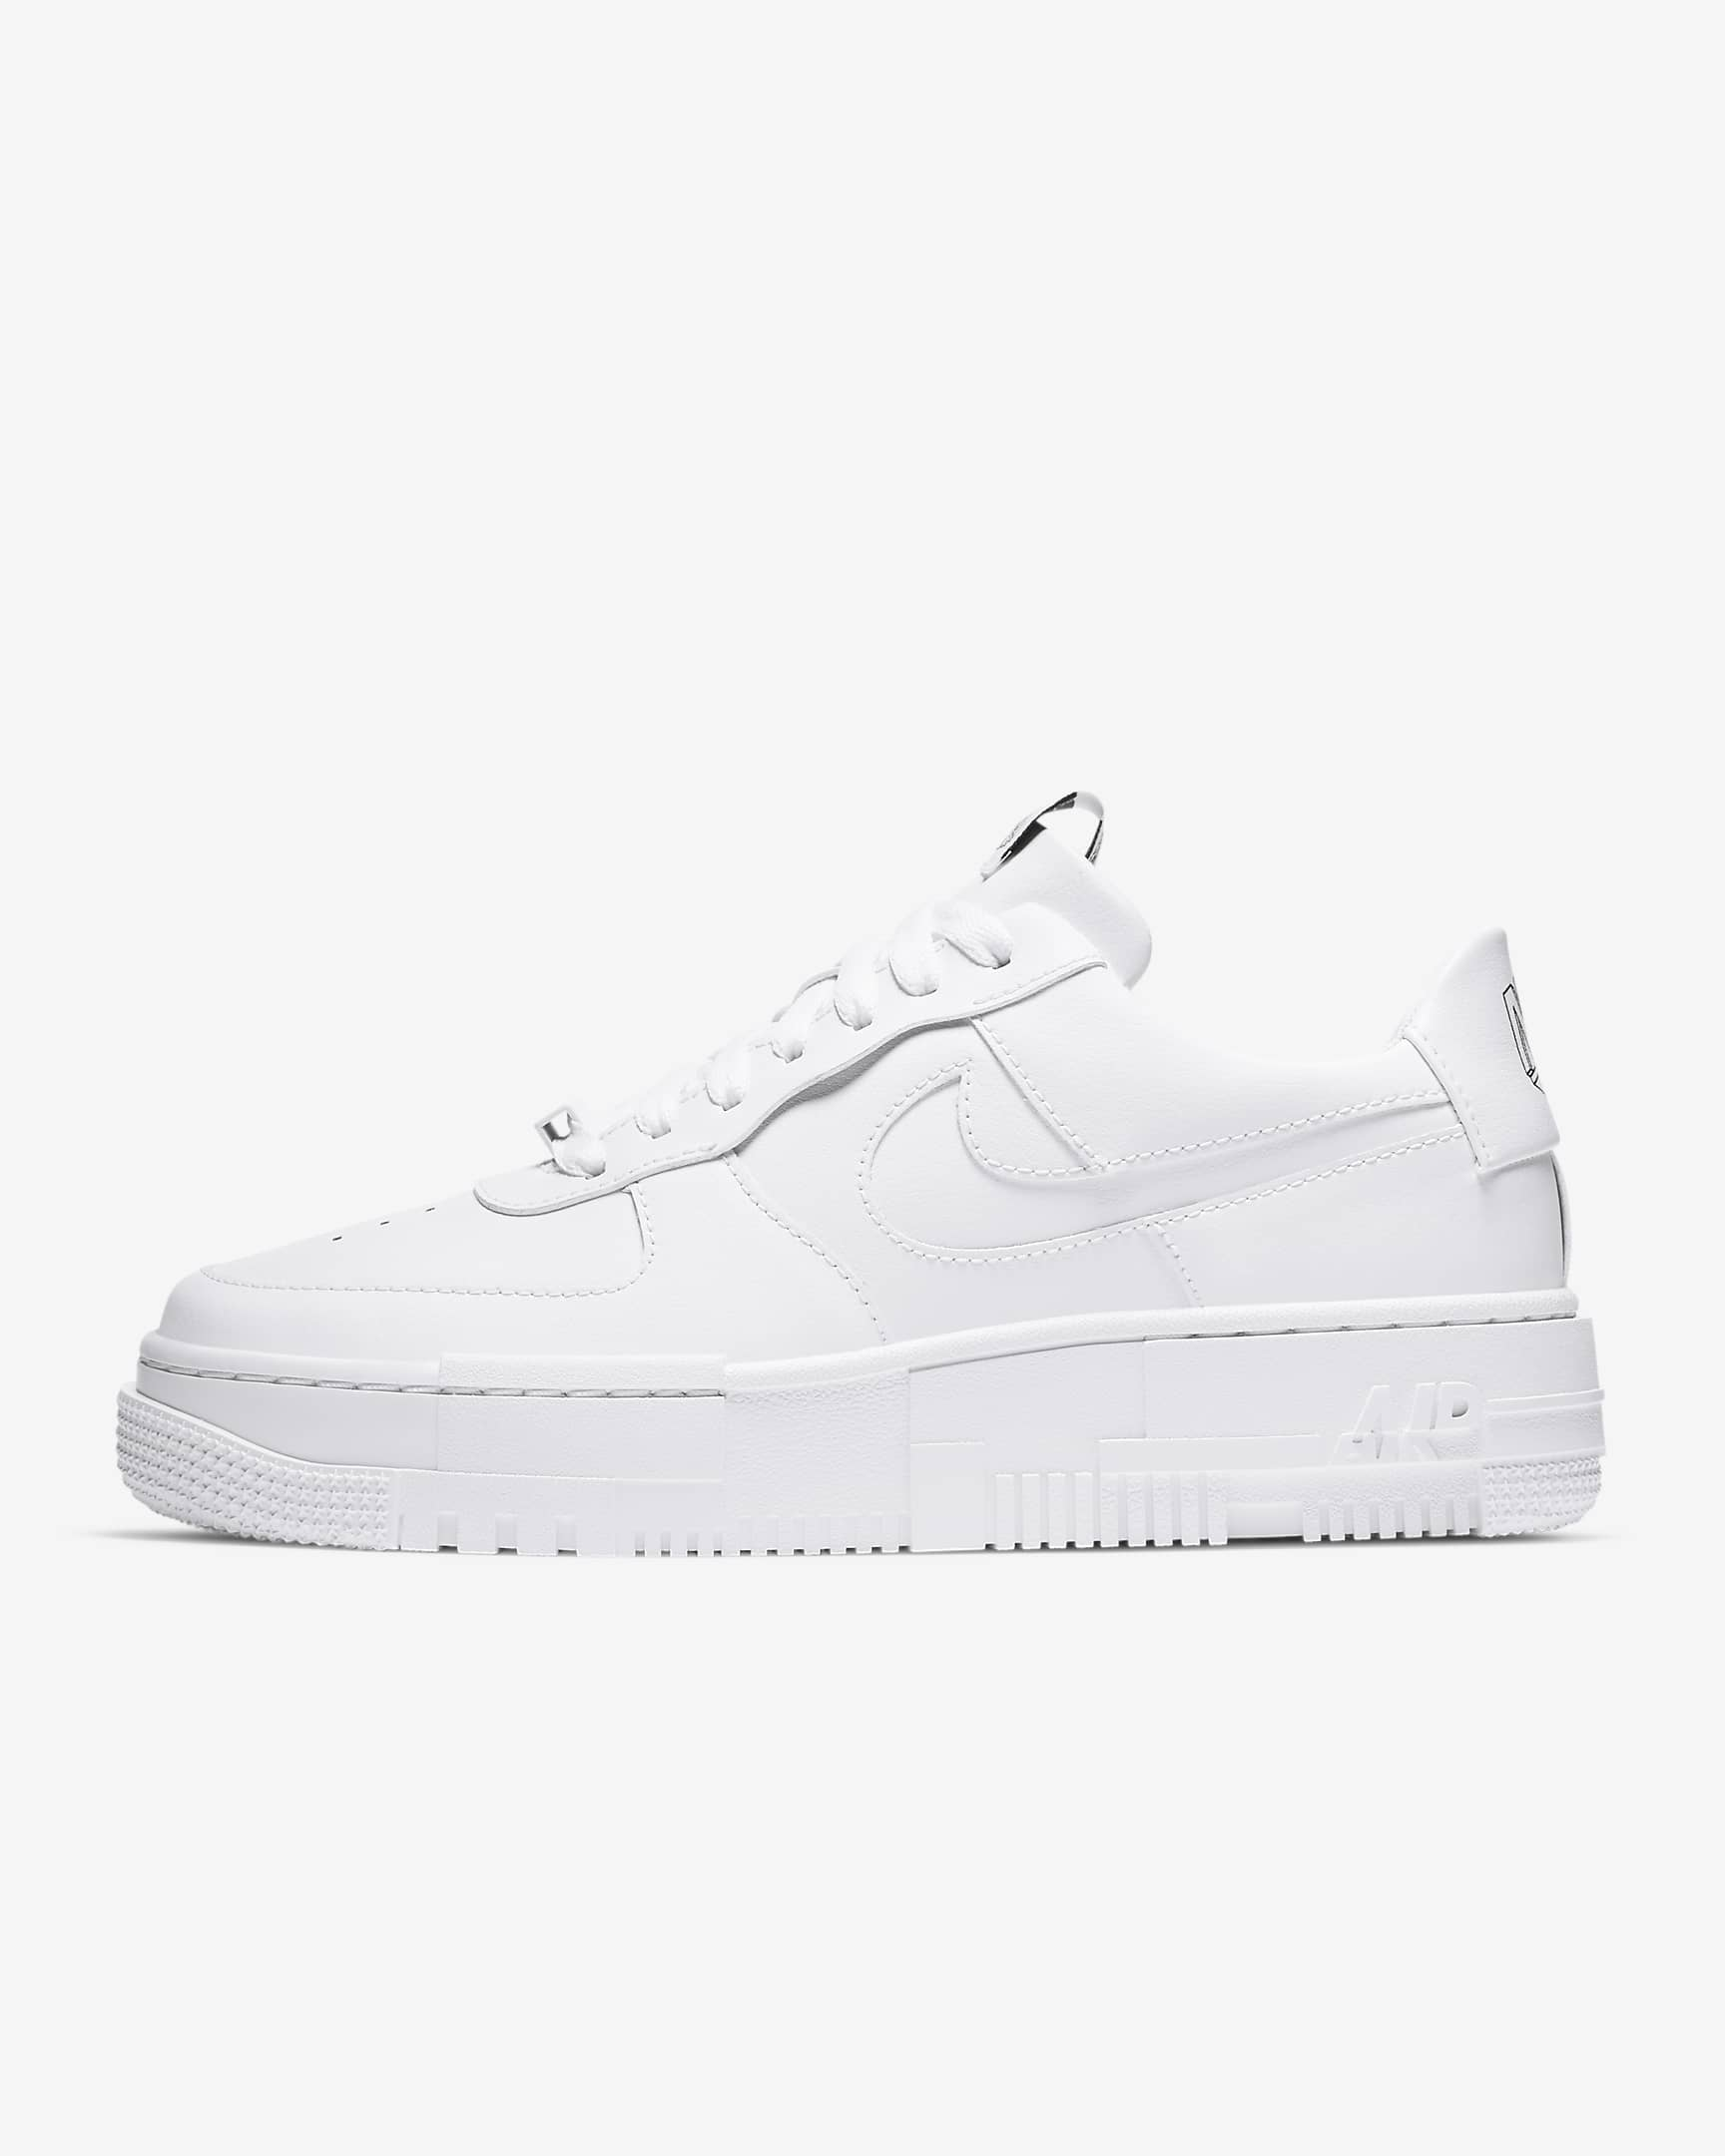 Air Force 1 Pixel white sneakers